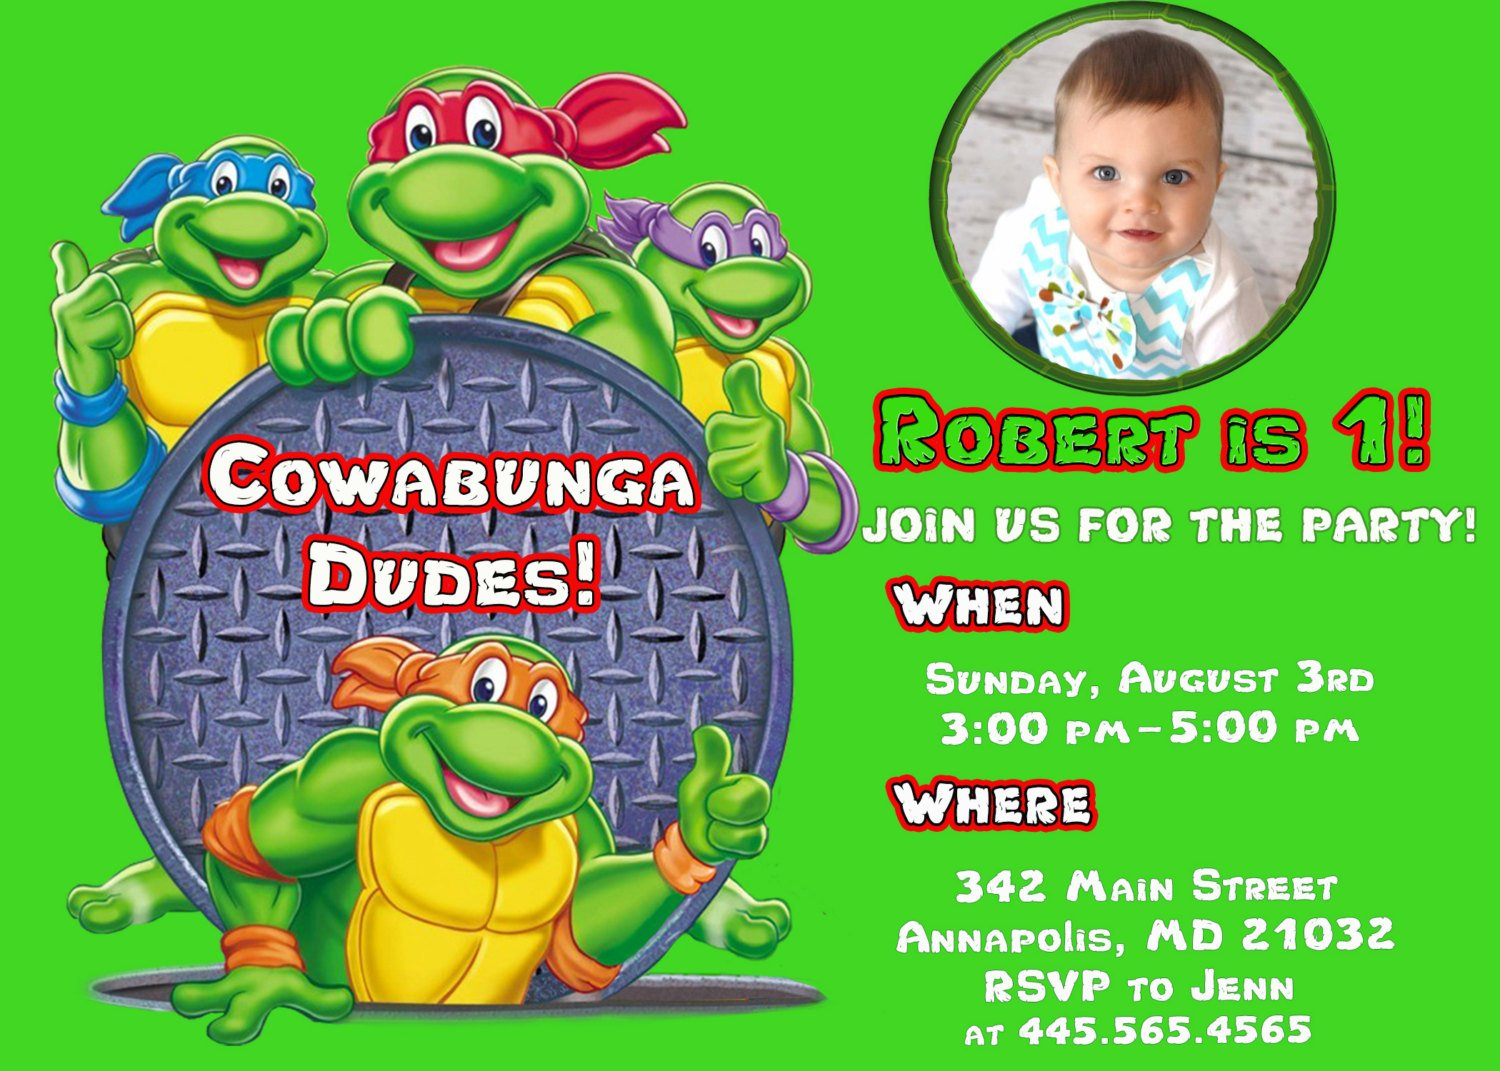 Personalized Ninja Turtle Invitations is great invitations sample